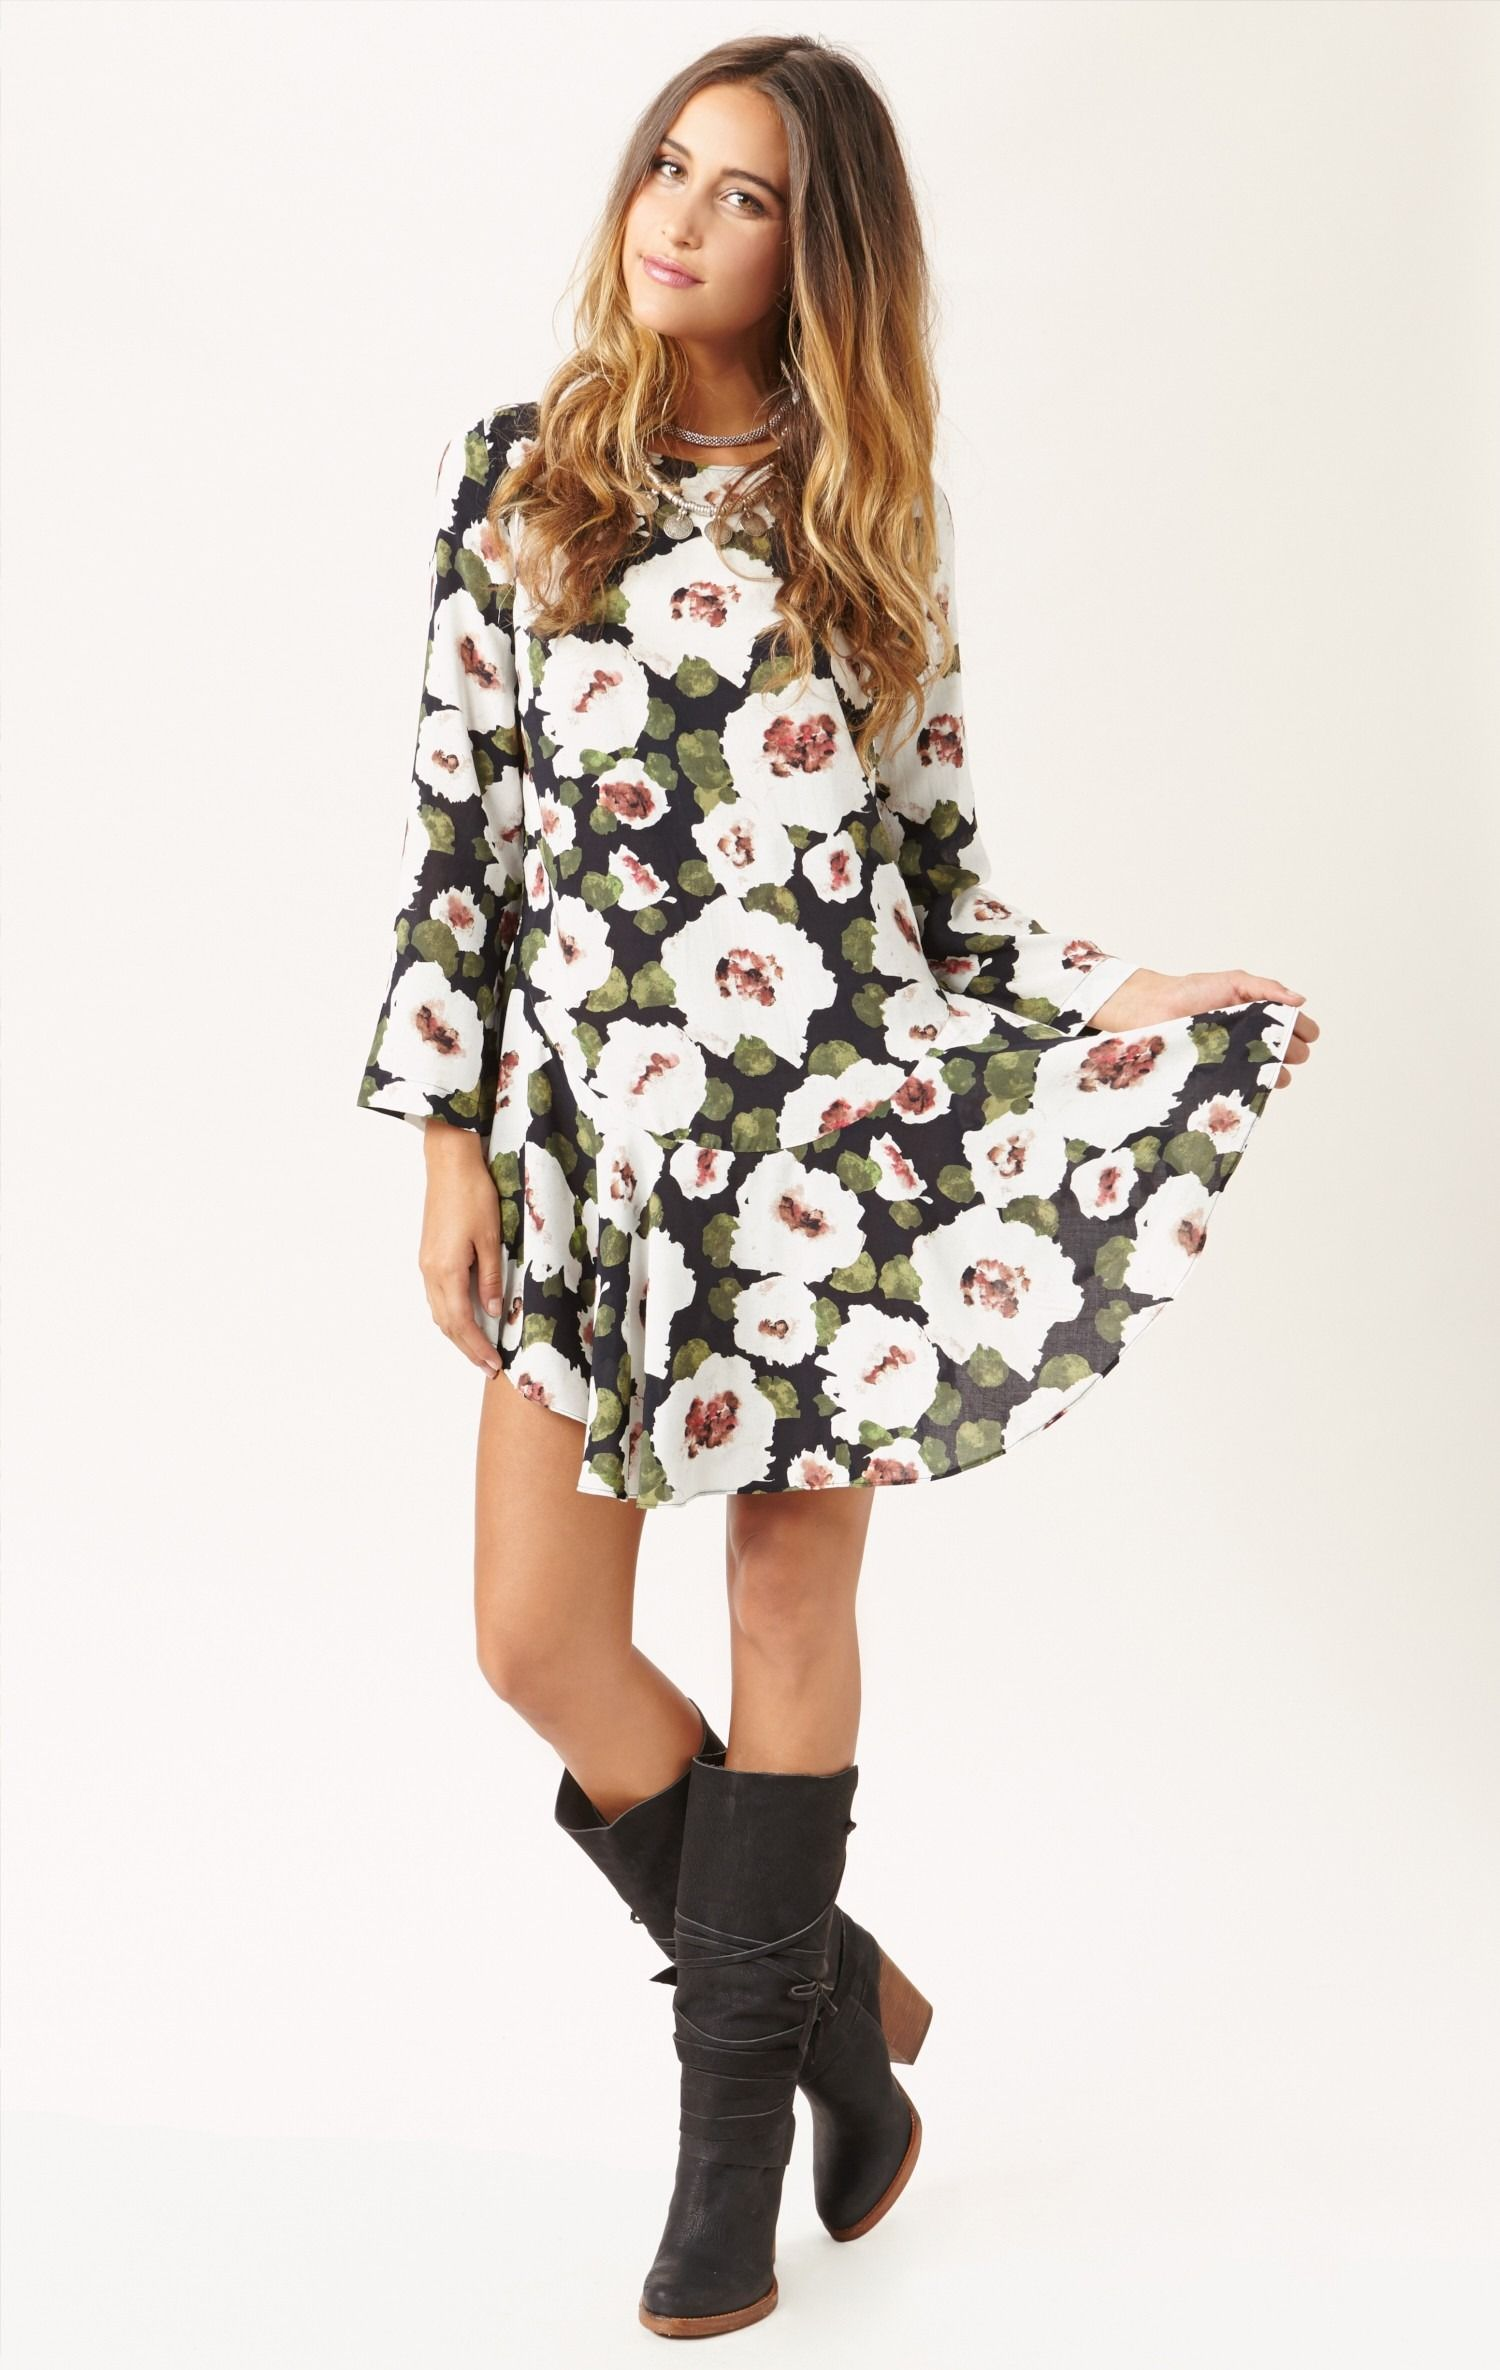 Green long sleeve floral print backless dress look at me